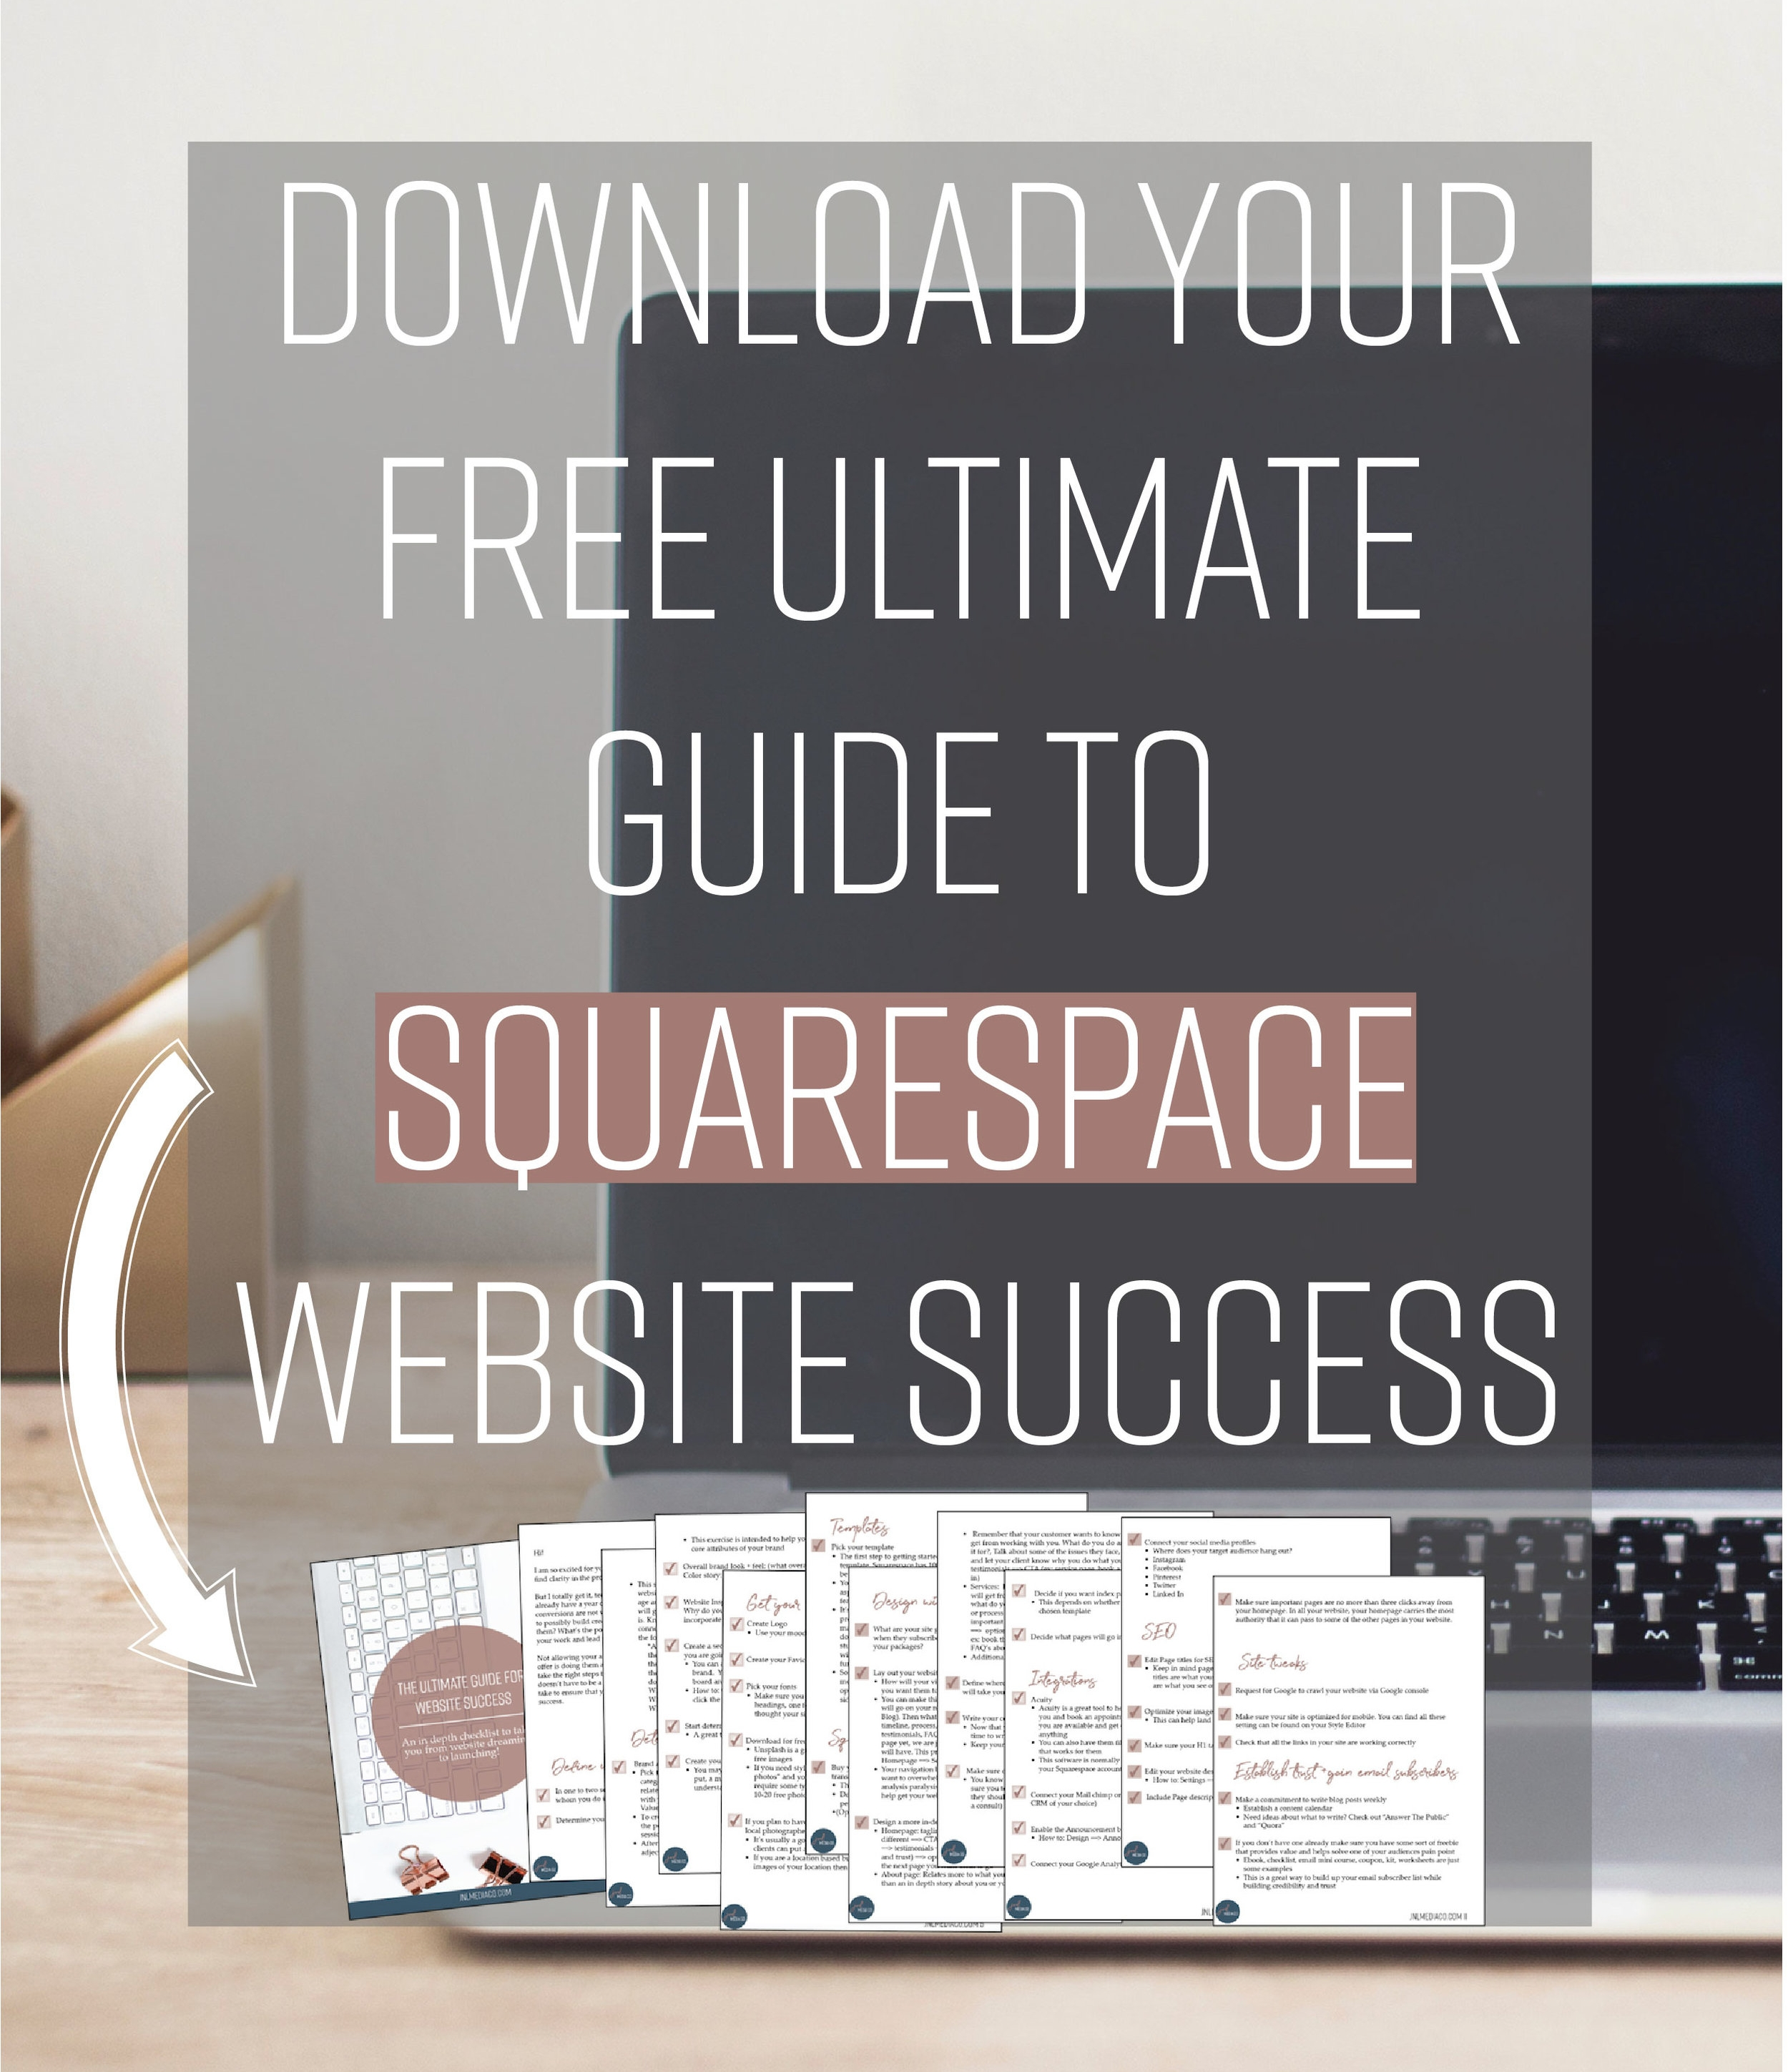 Download Your Free Ultimate Guide To Squarespace Website Success.jpg